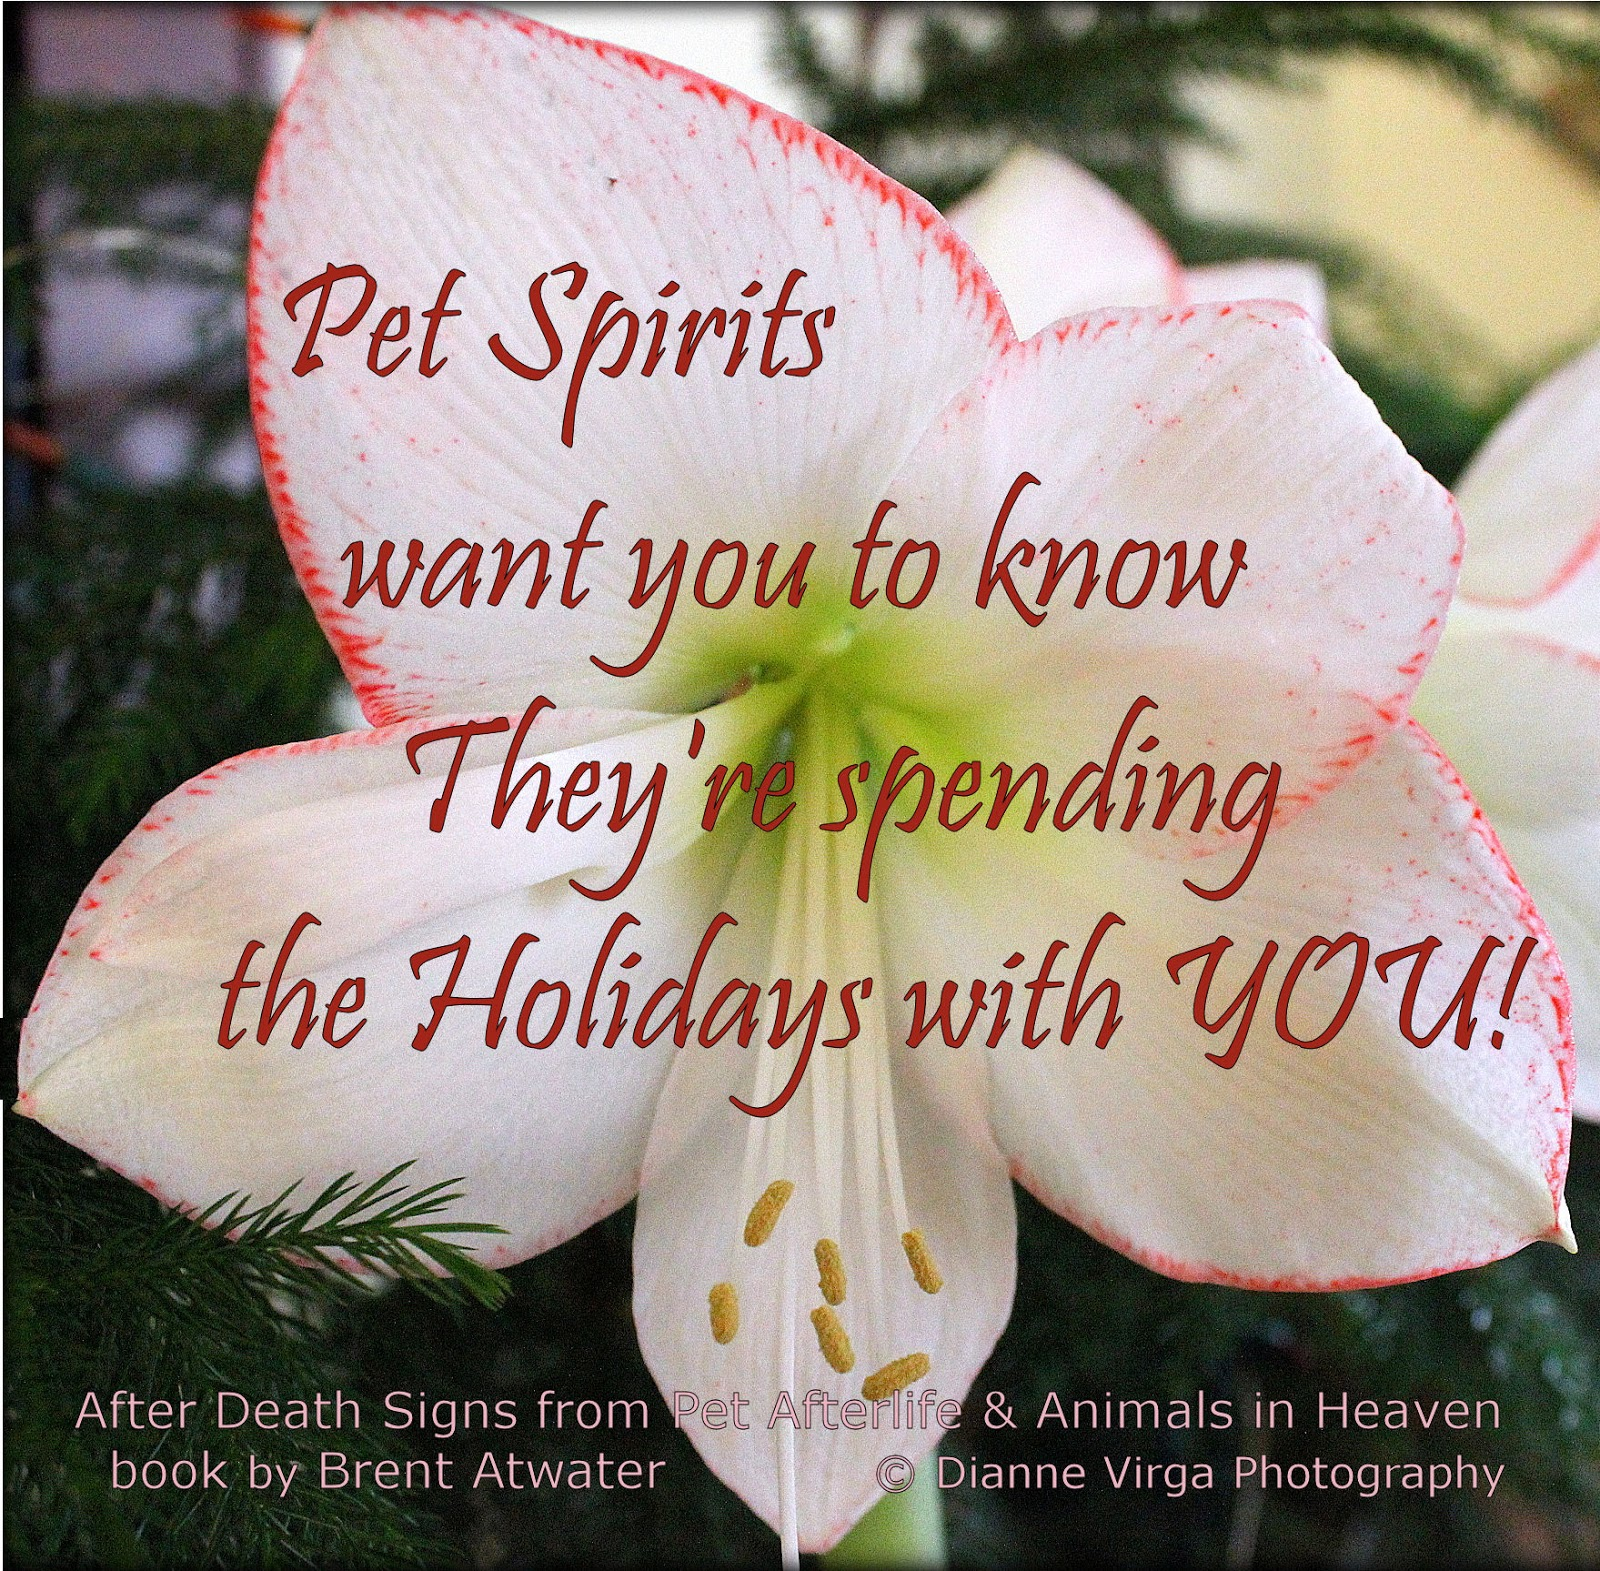 Coping With Death Quotes Healing Loss L Cope With Death L Grief Recovery L Afterlife L Live